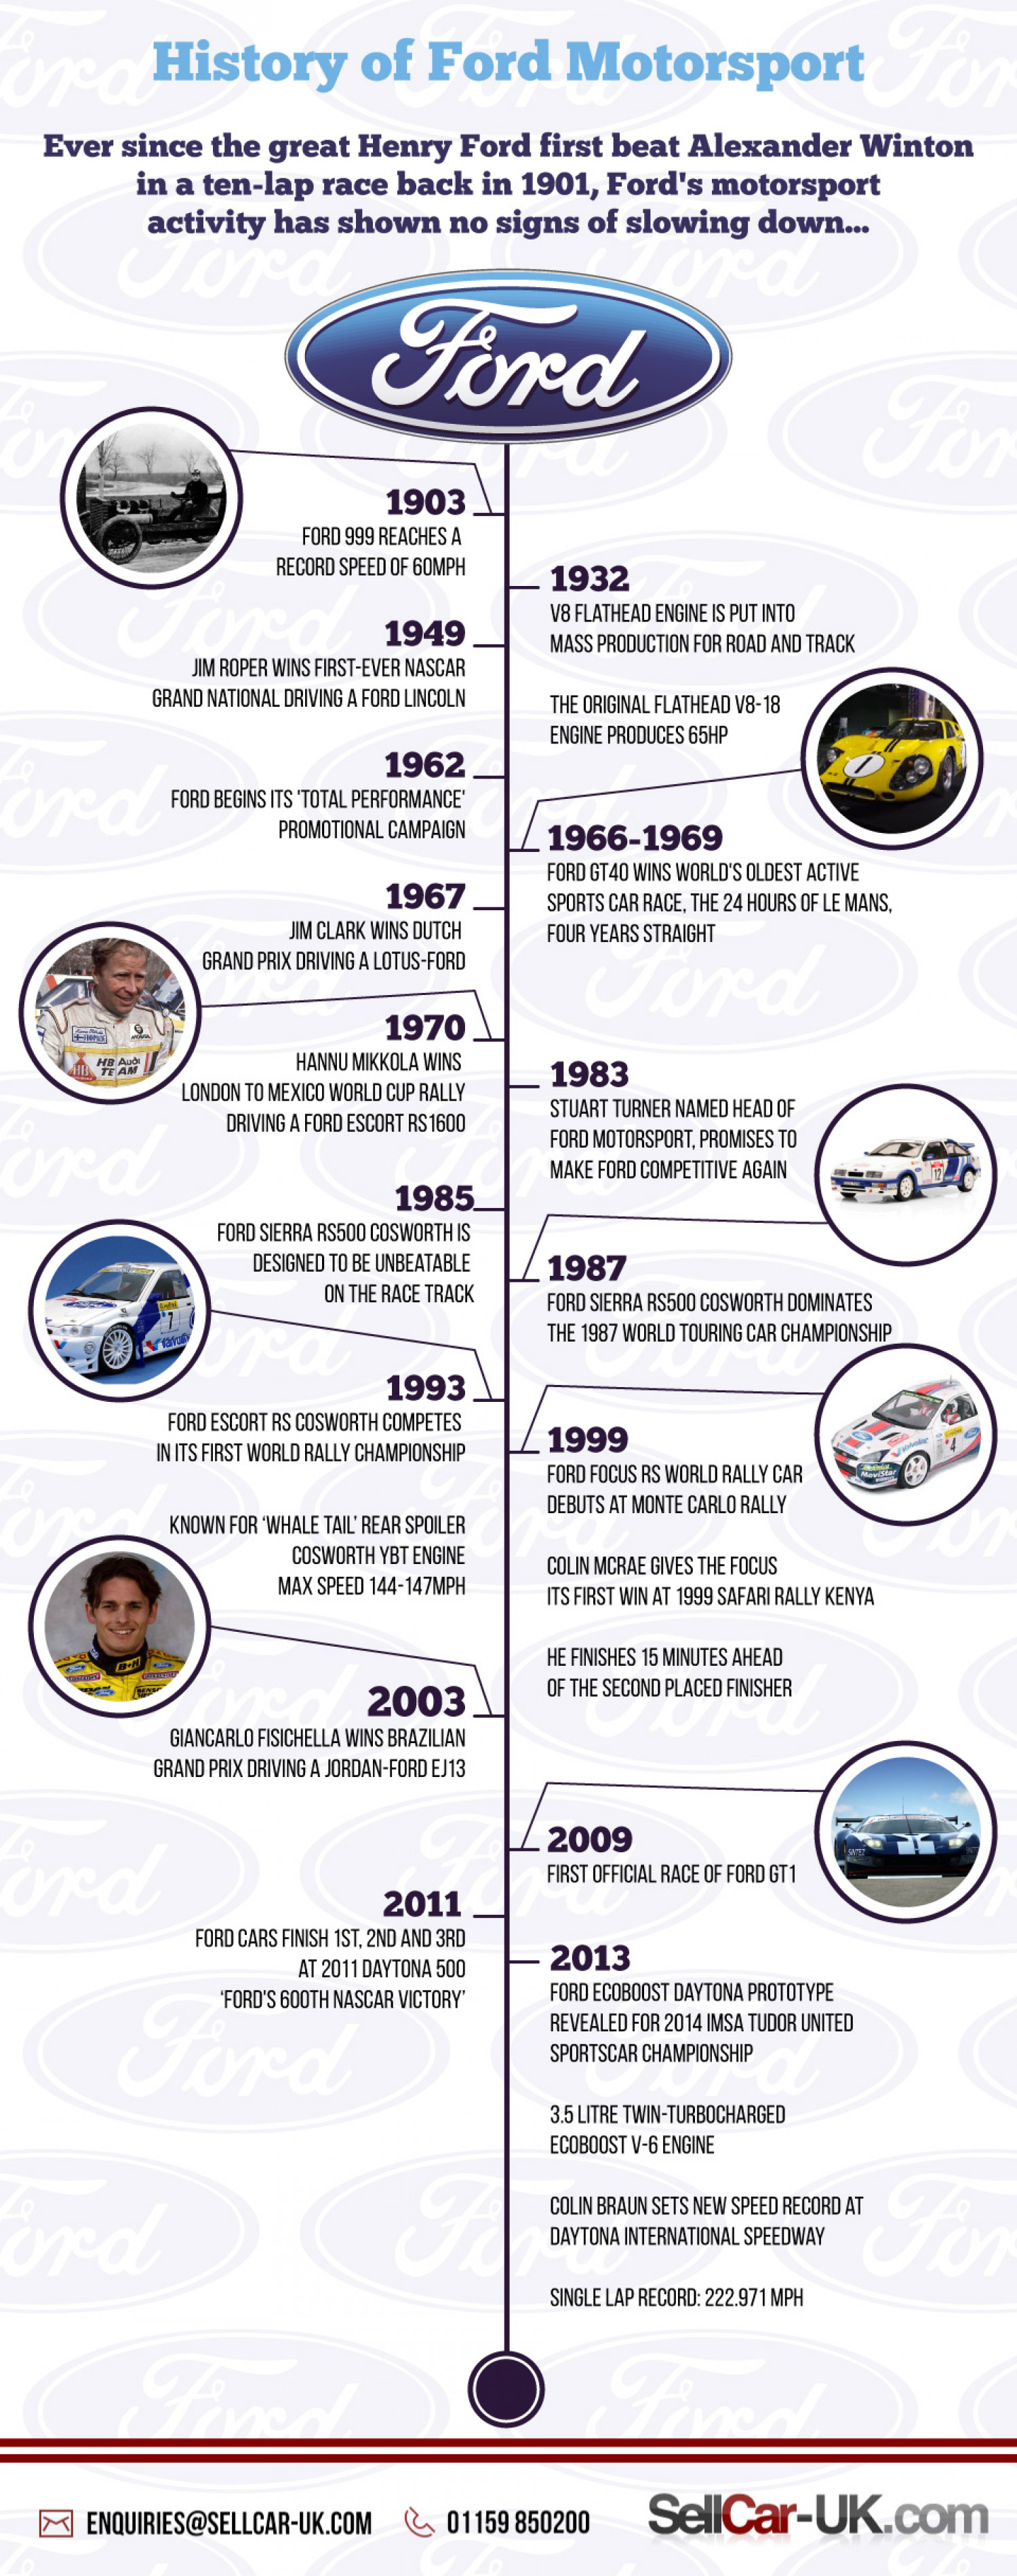 History of Ford Motorsport Infographic